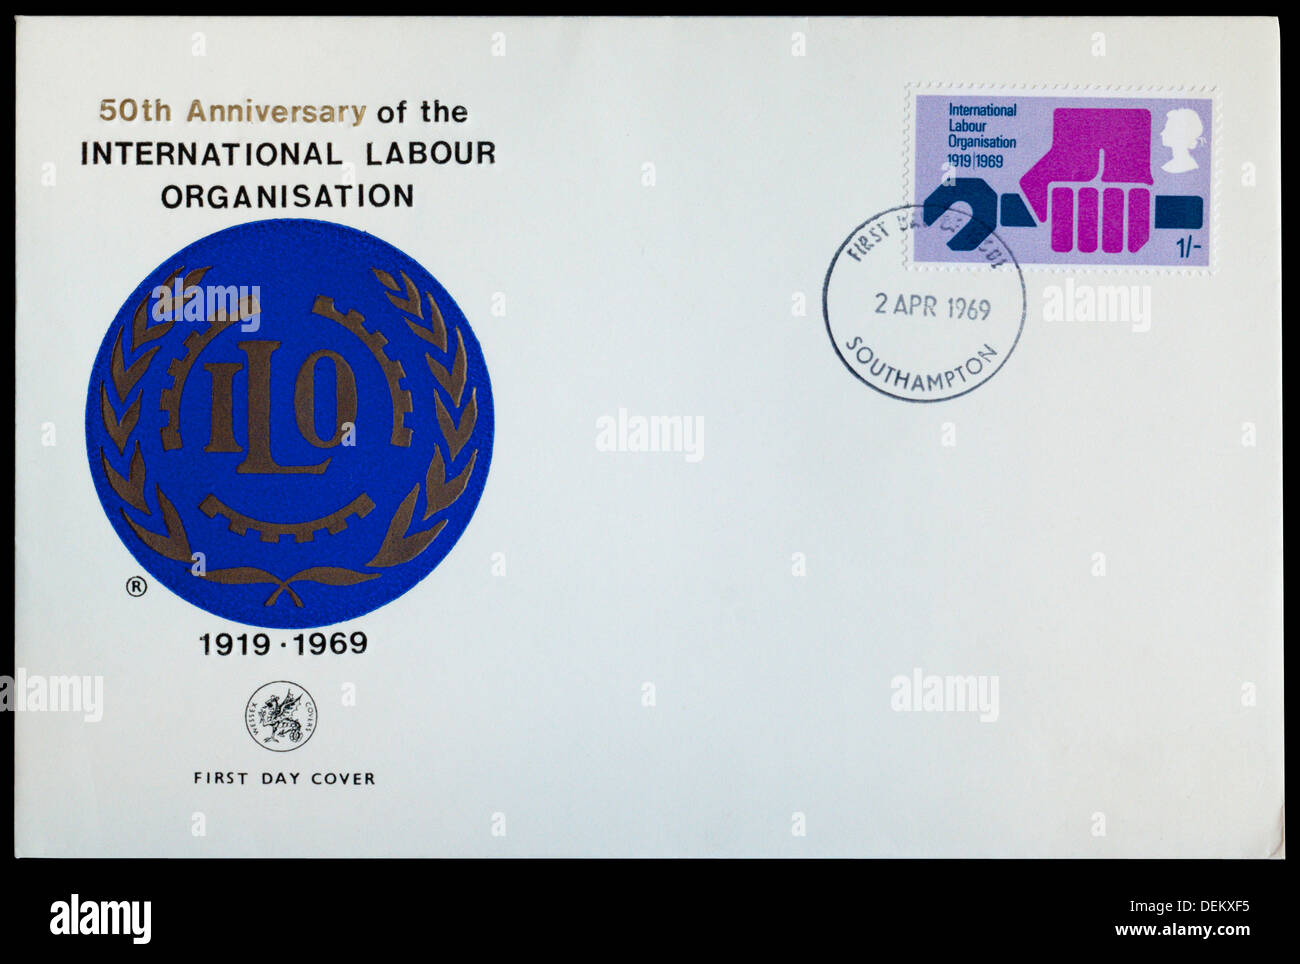 First Day Cover commemorating the 50th anniversary of the International Labour Organisation. - Stock Image